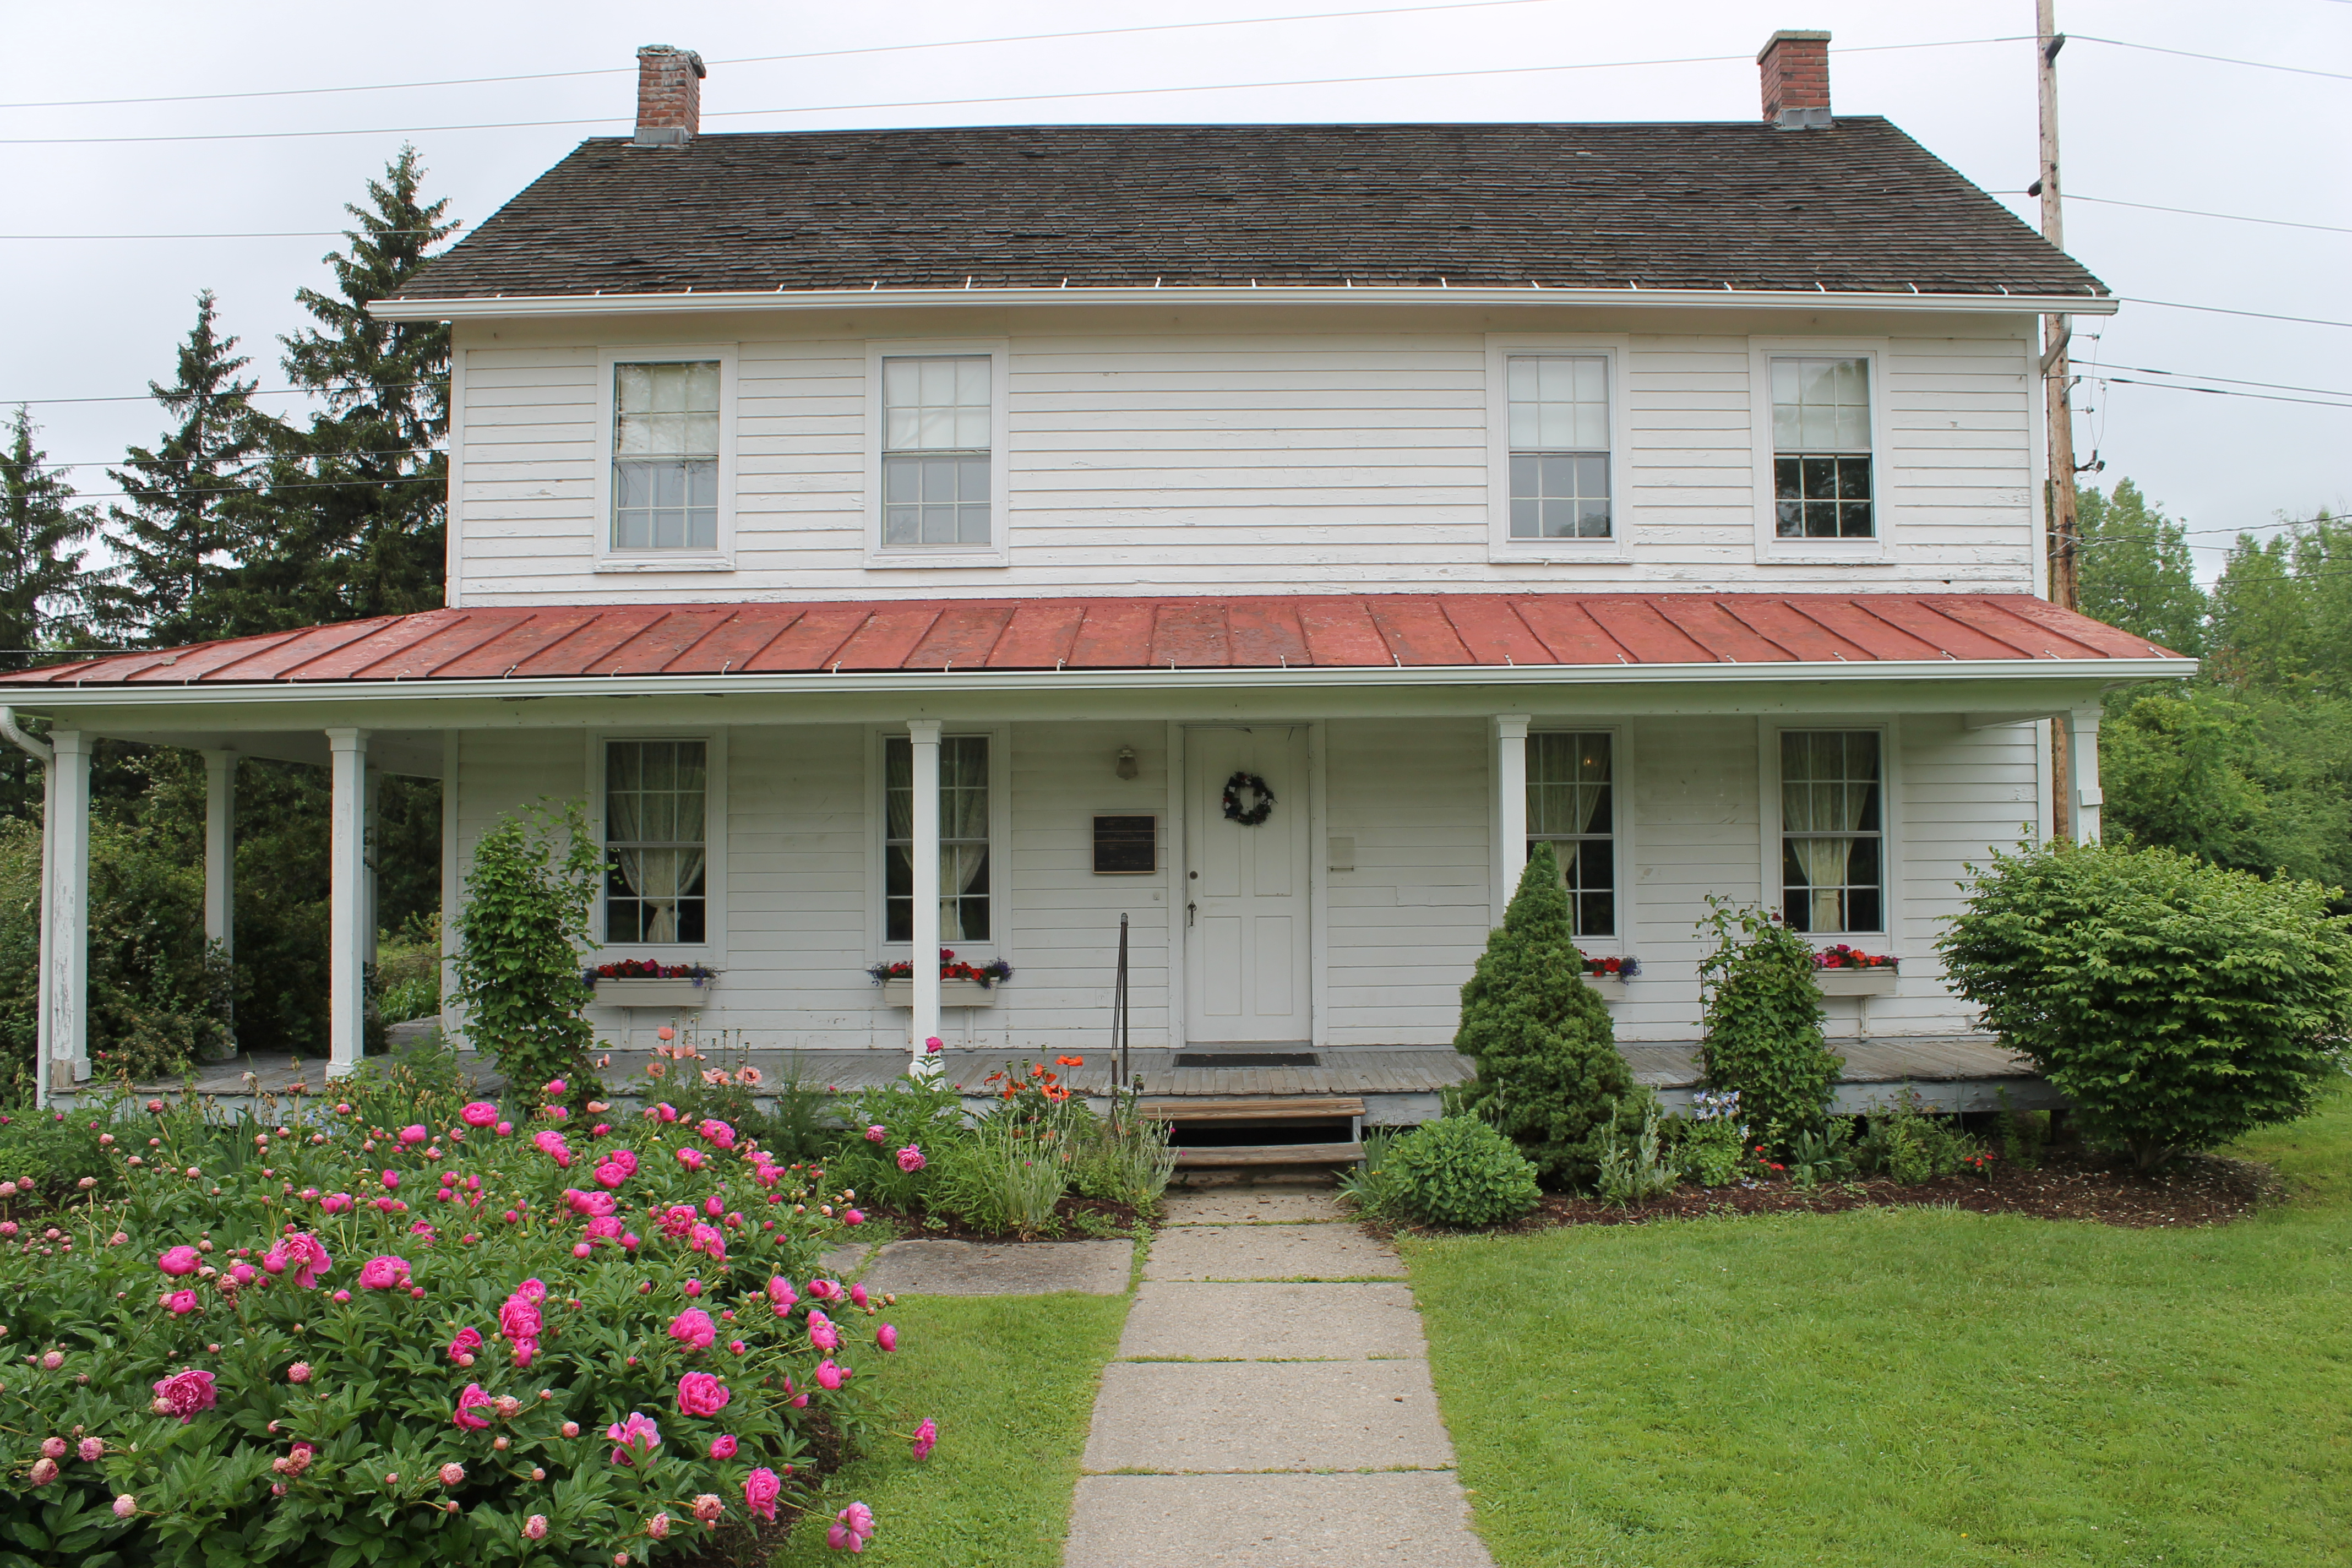 Harriet Tubman Home - The harriet tubman home located in auburn new york